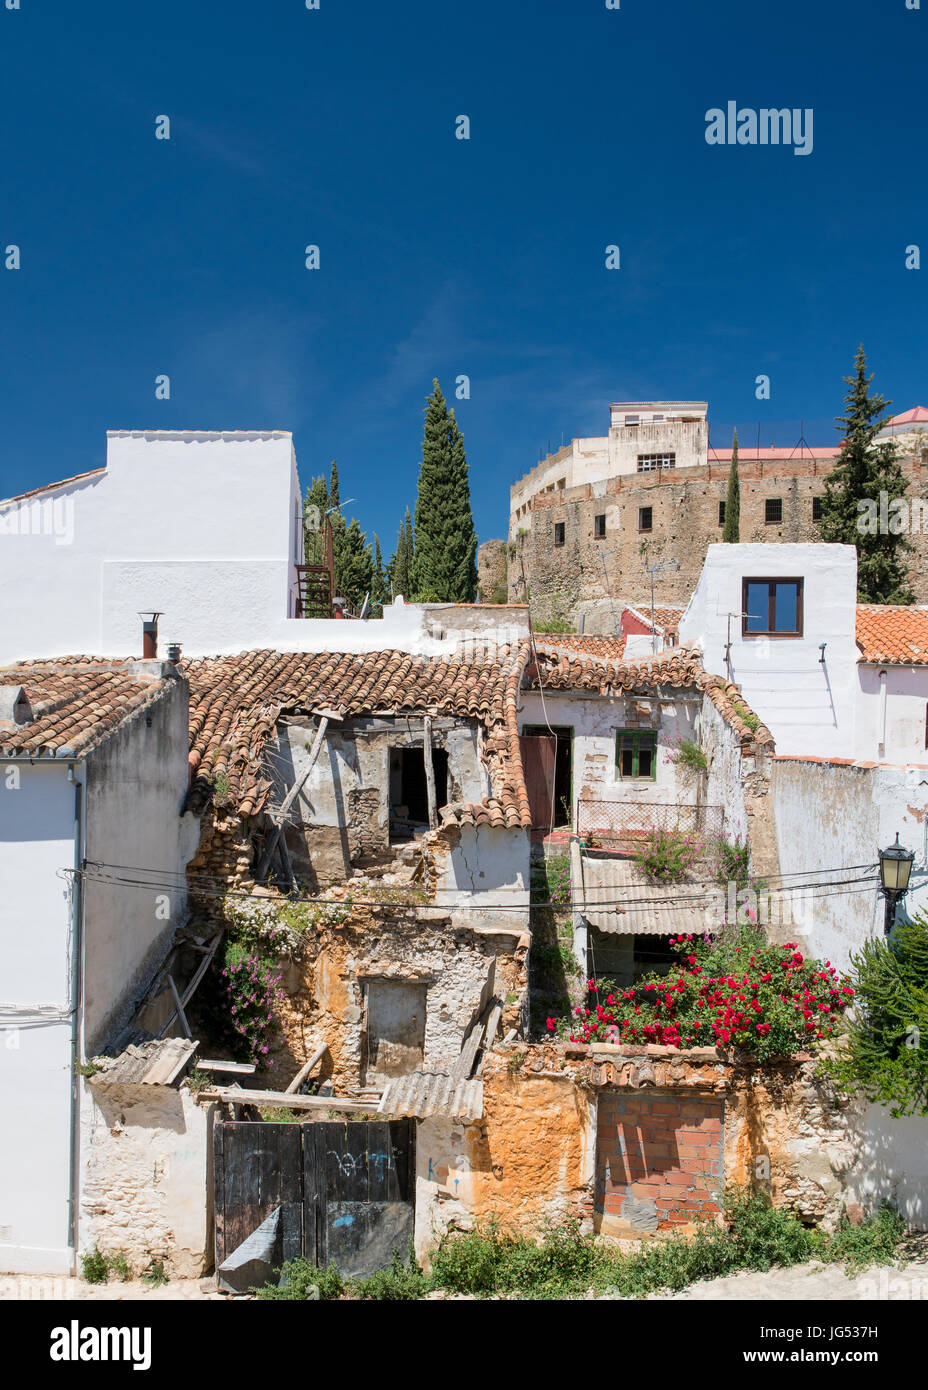 Abandoned Finca or townhouse in the City of Ronda in Spain's Malaga province, Andalusia Stock Photo